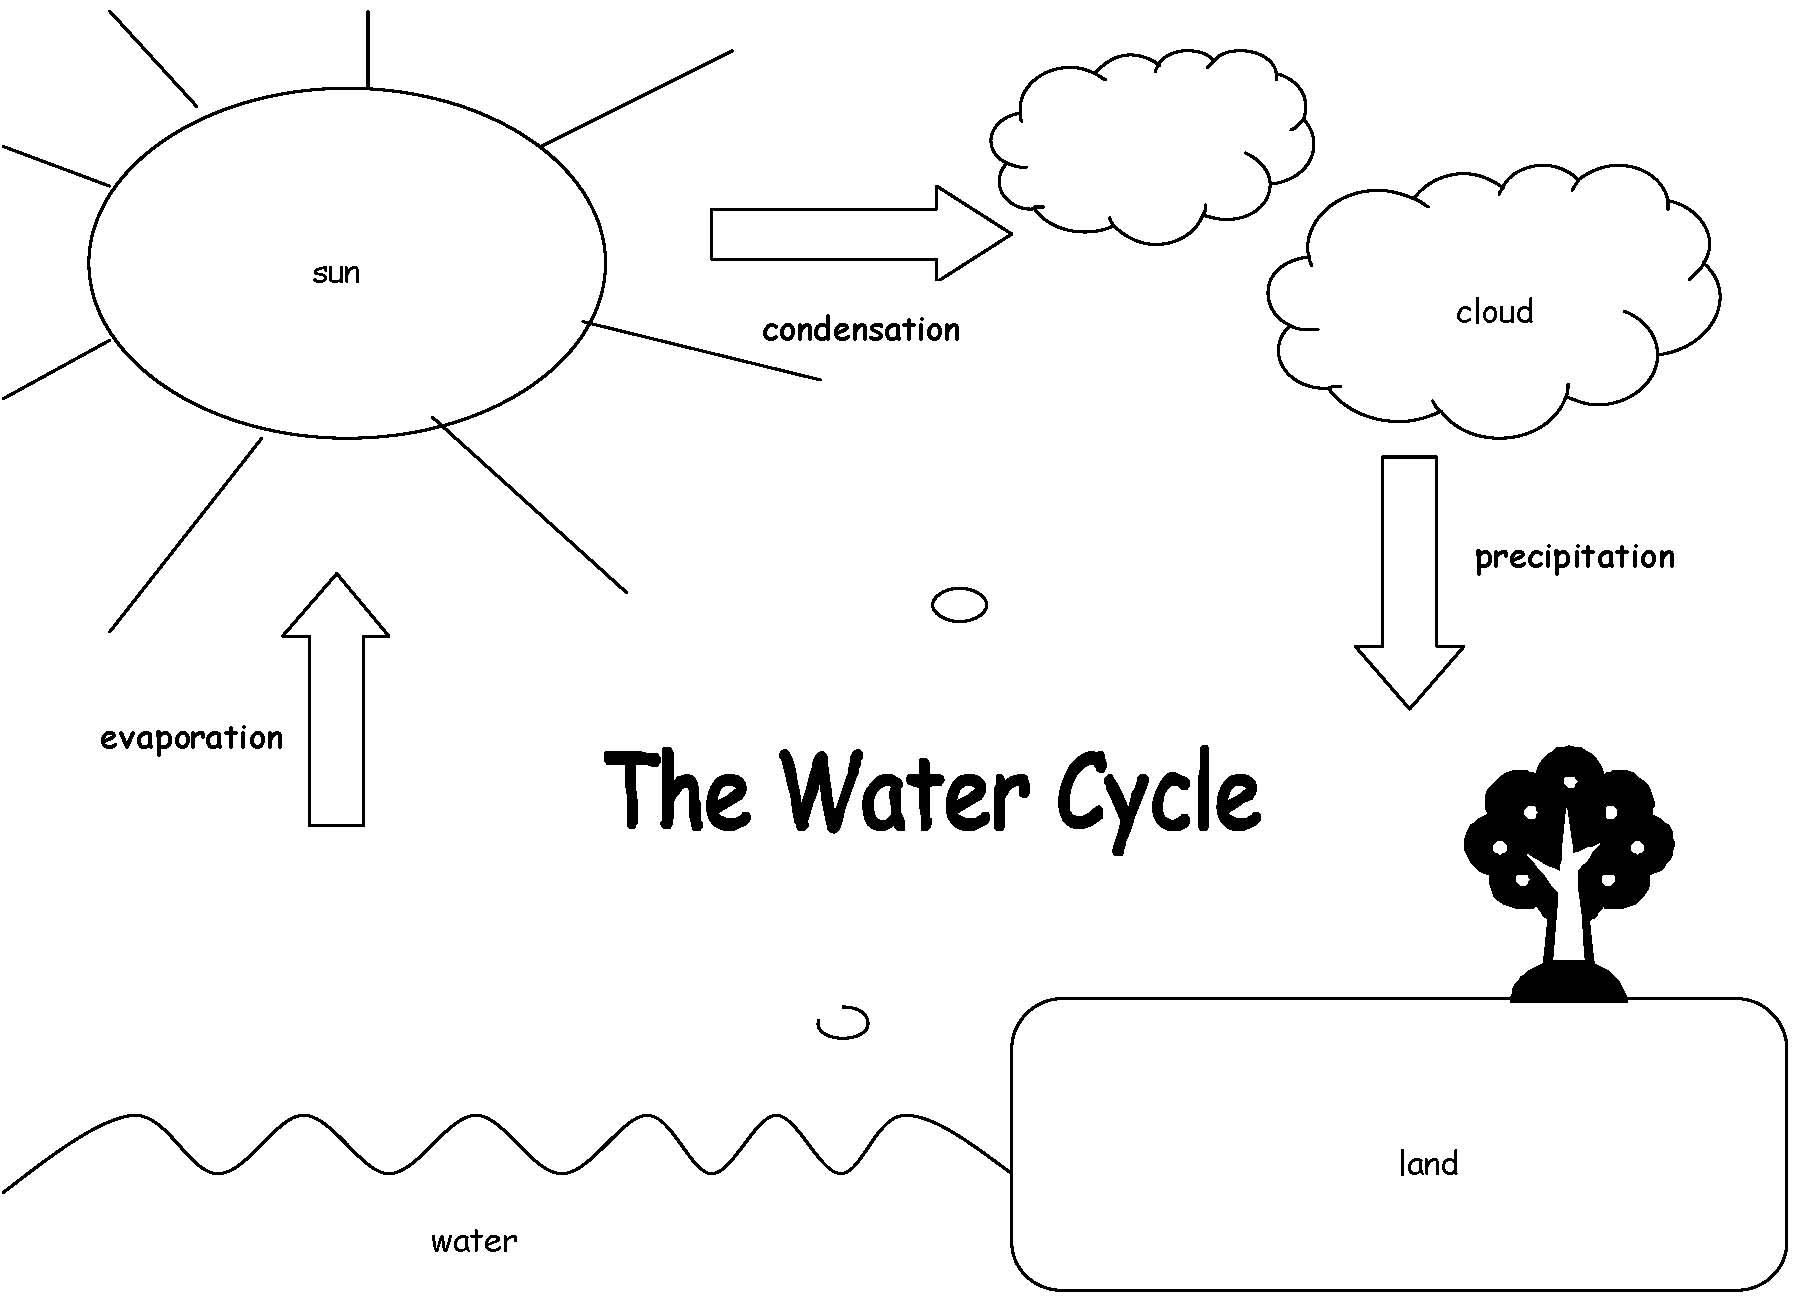 the water cycle diagram labeled